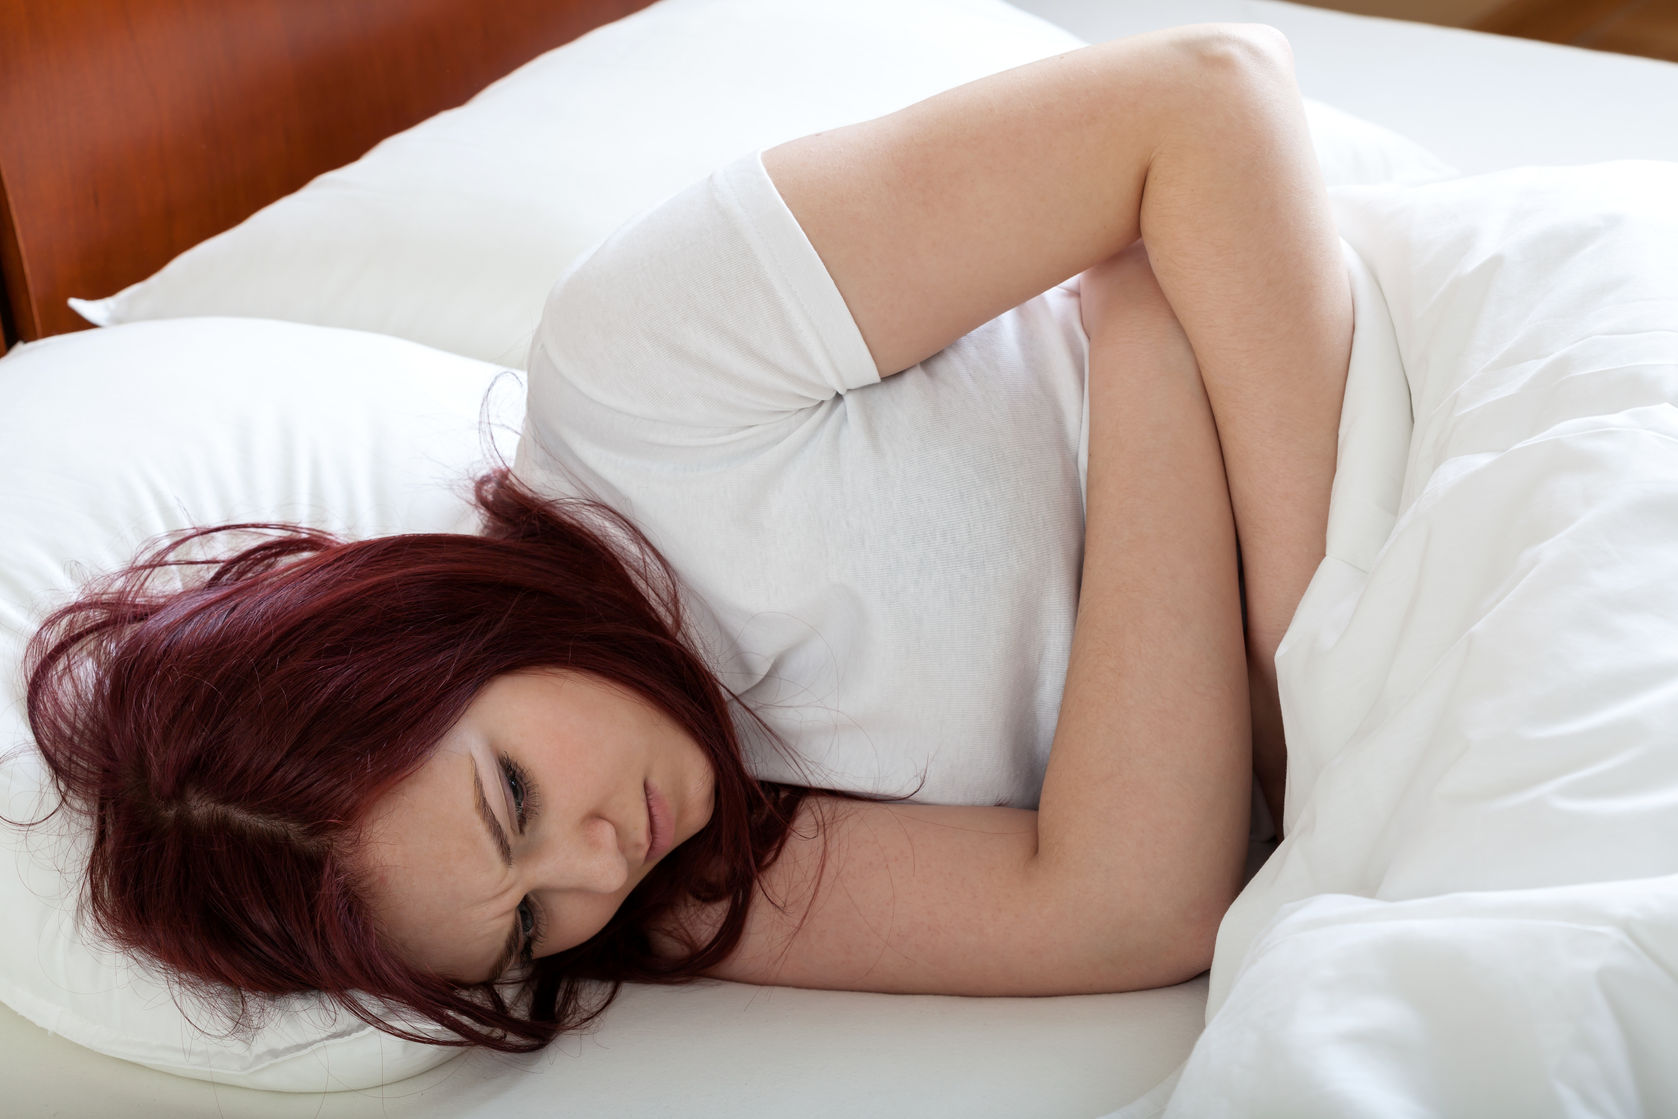 How to Prevent Nausea and Vomiting After Bariatric Surgery by BariMelts